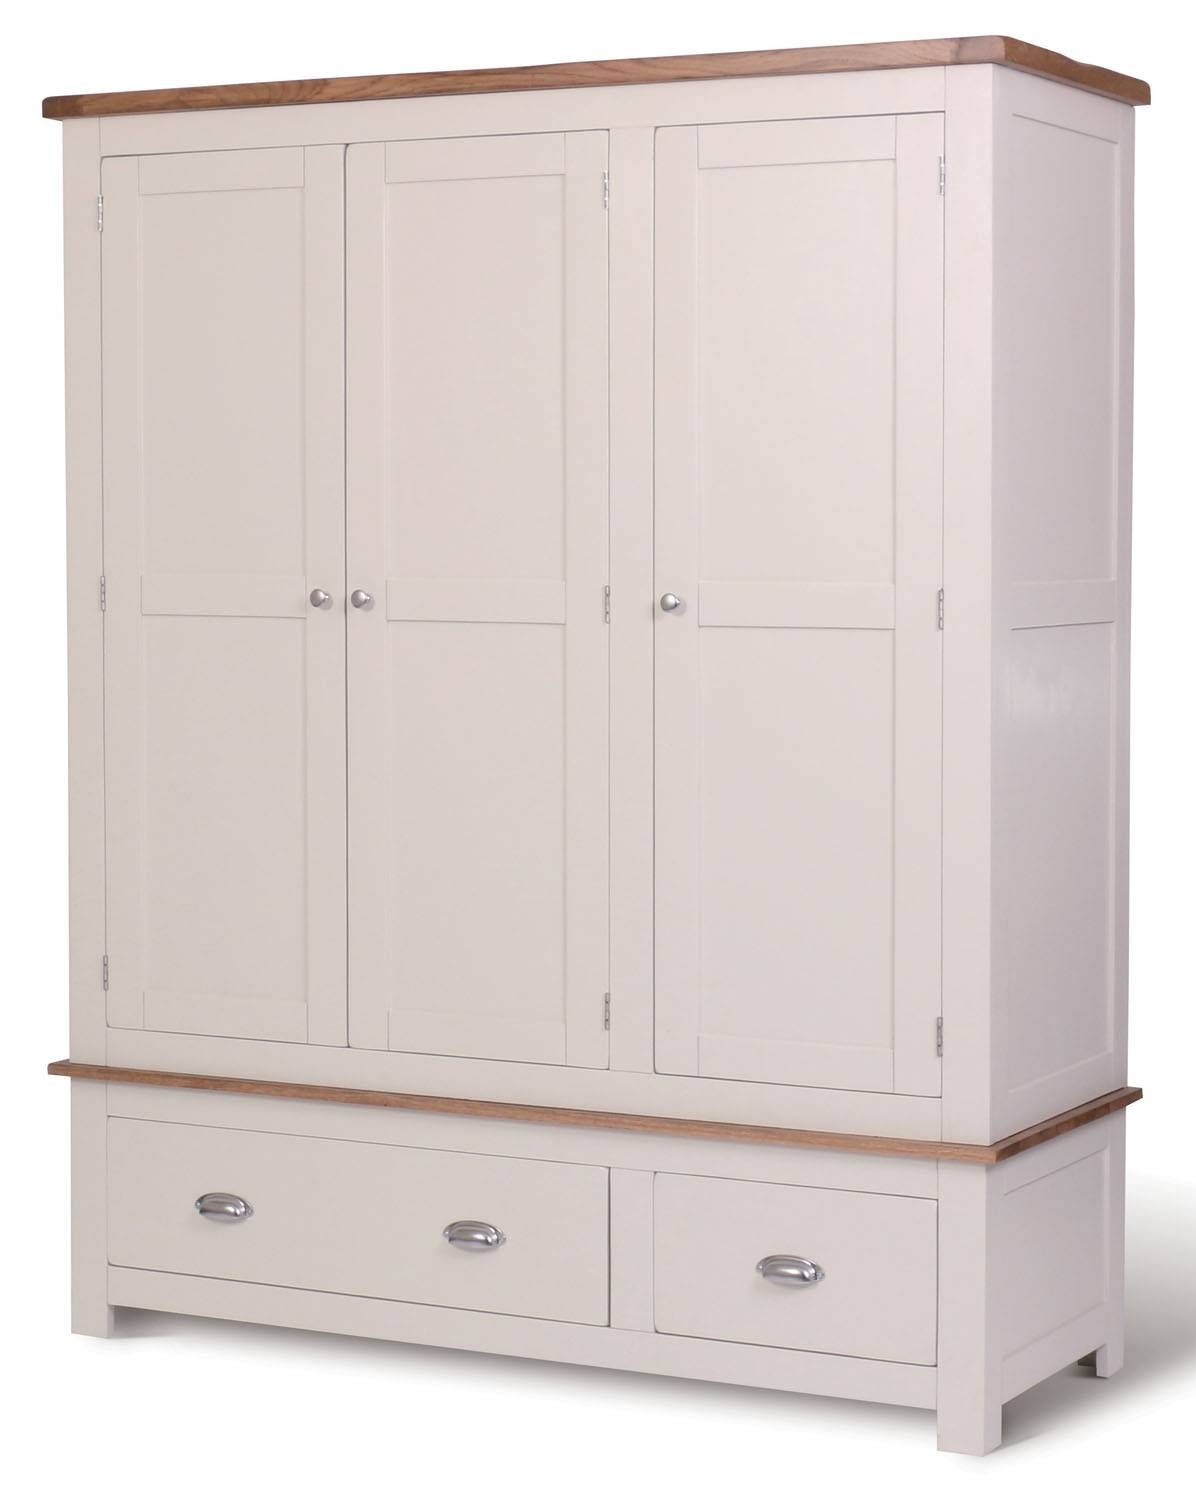 Ascot Triple Wardrobe With Drawers - Wardrobes - Bedroom | Hallowood throughout Triple Wardrobes With Drawers (Image 3 of 15)